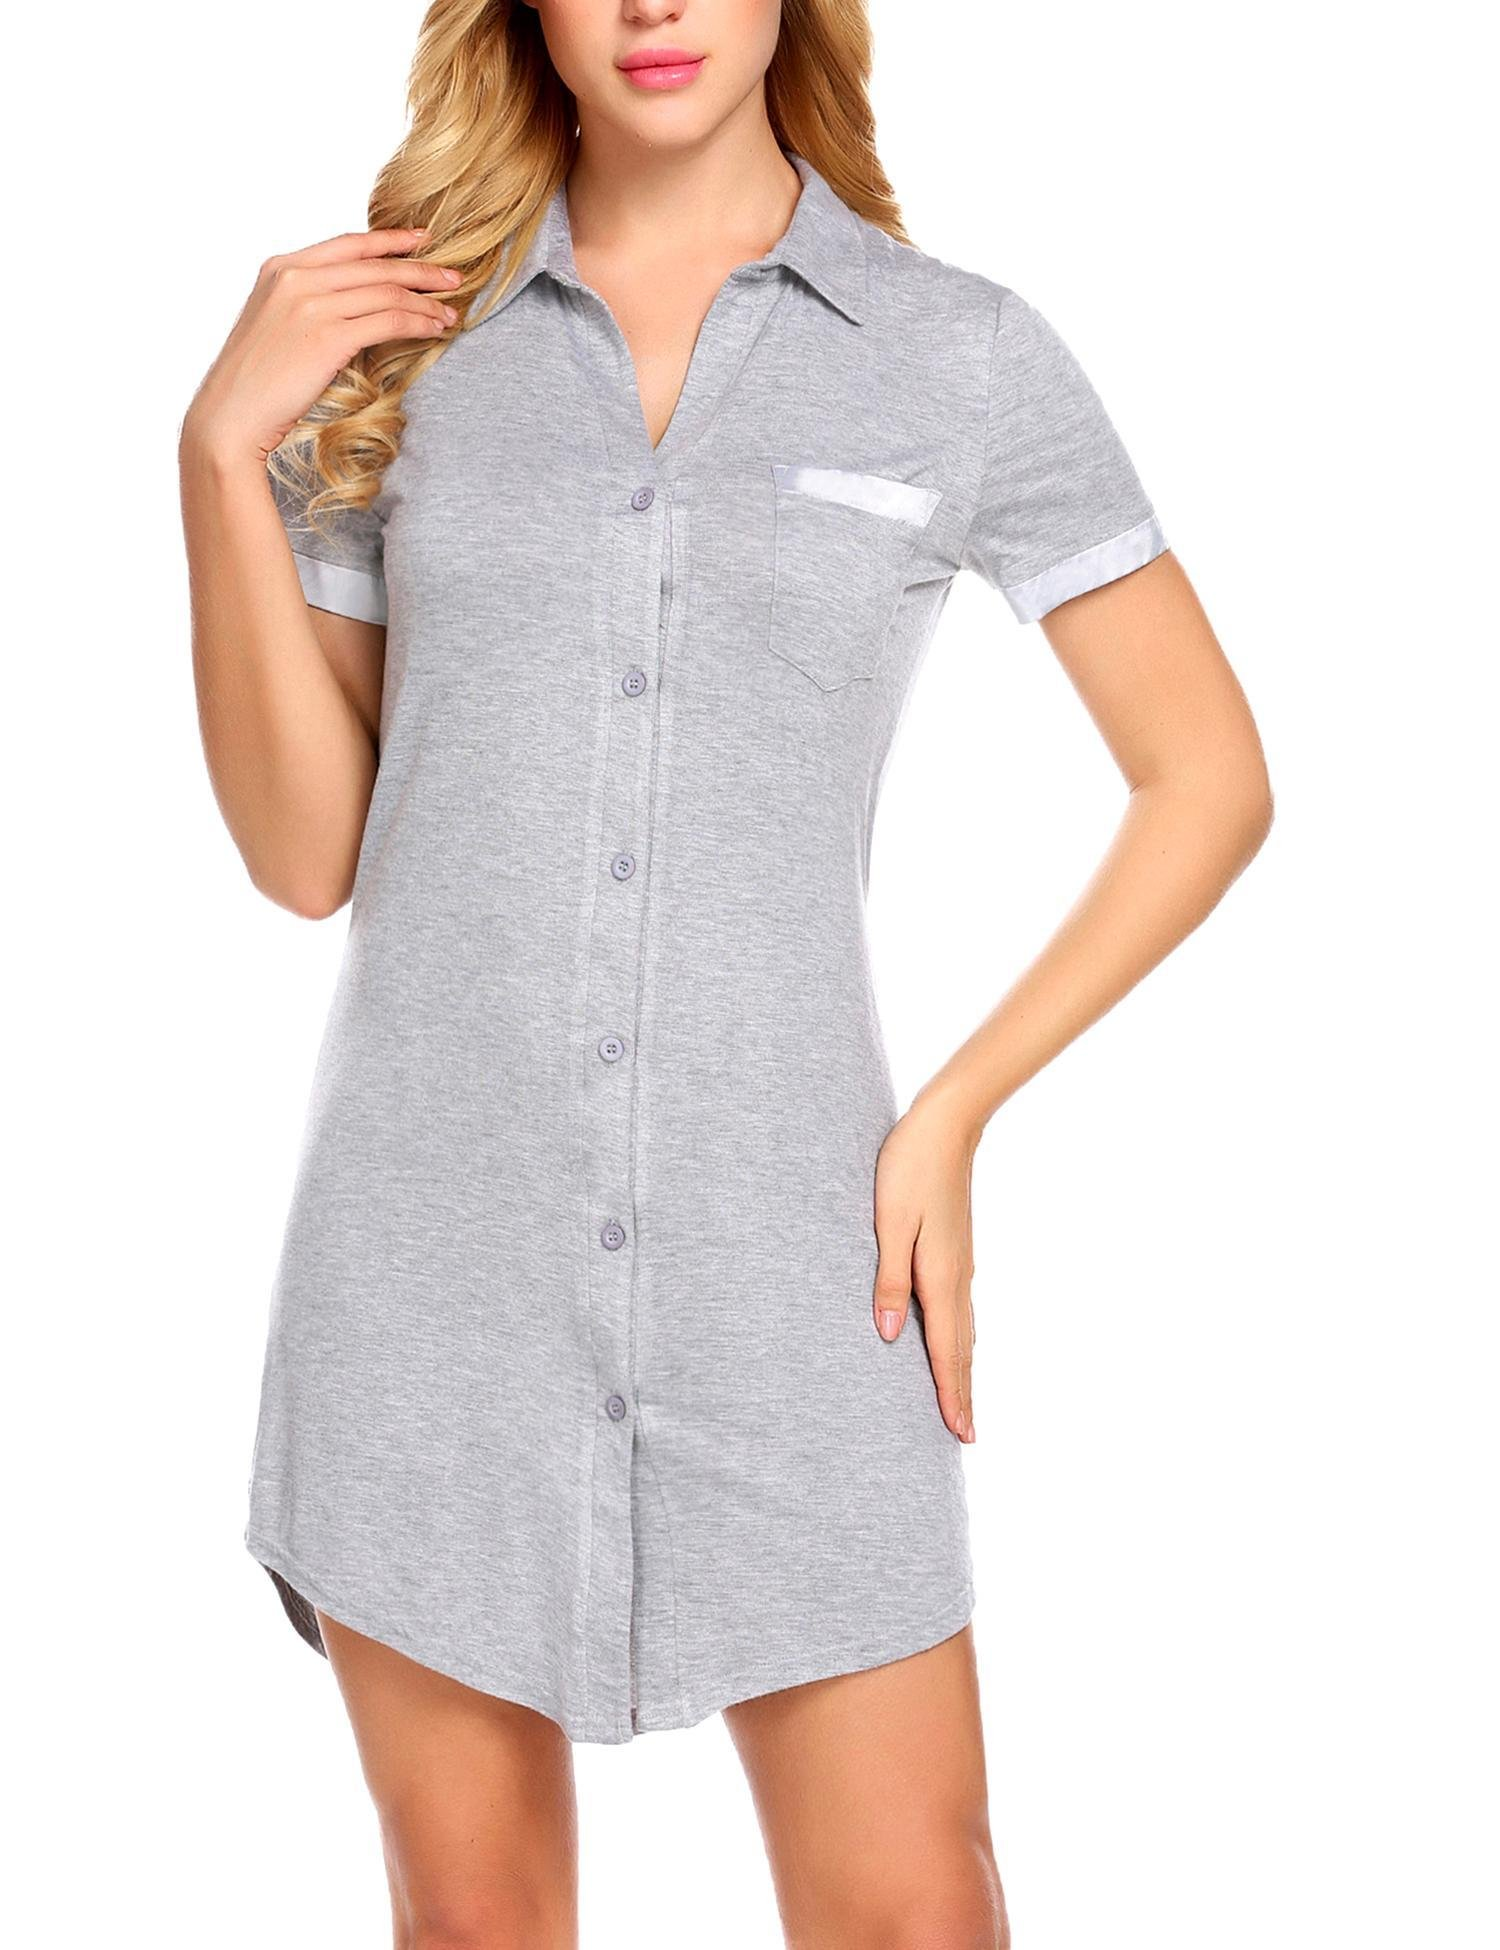 Avidlove Women Button Front Boyfriend Sleep Shirt Short Sleeve Nightshirts Lapel V Neck Sleepwear